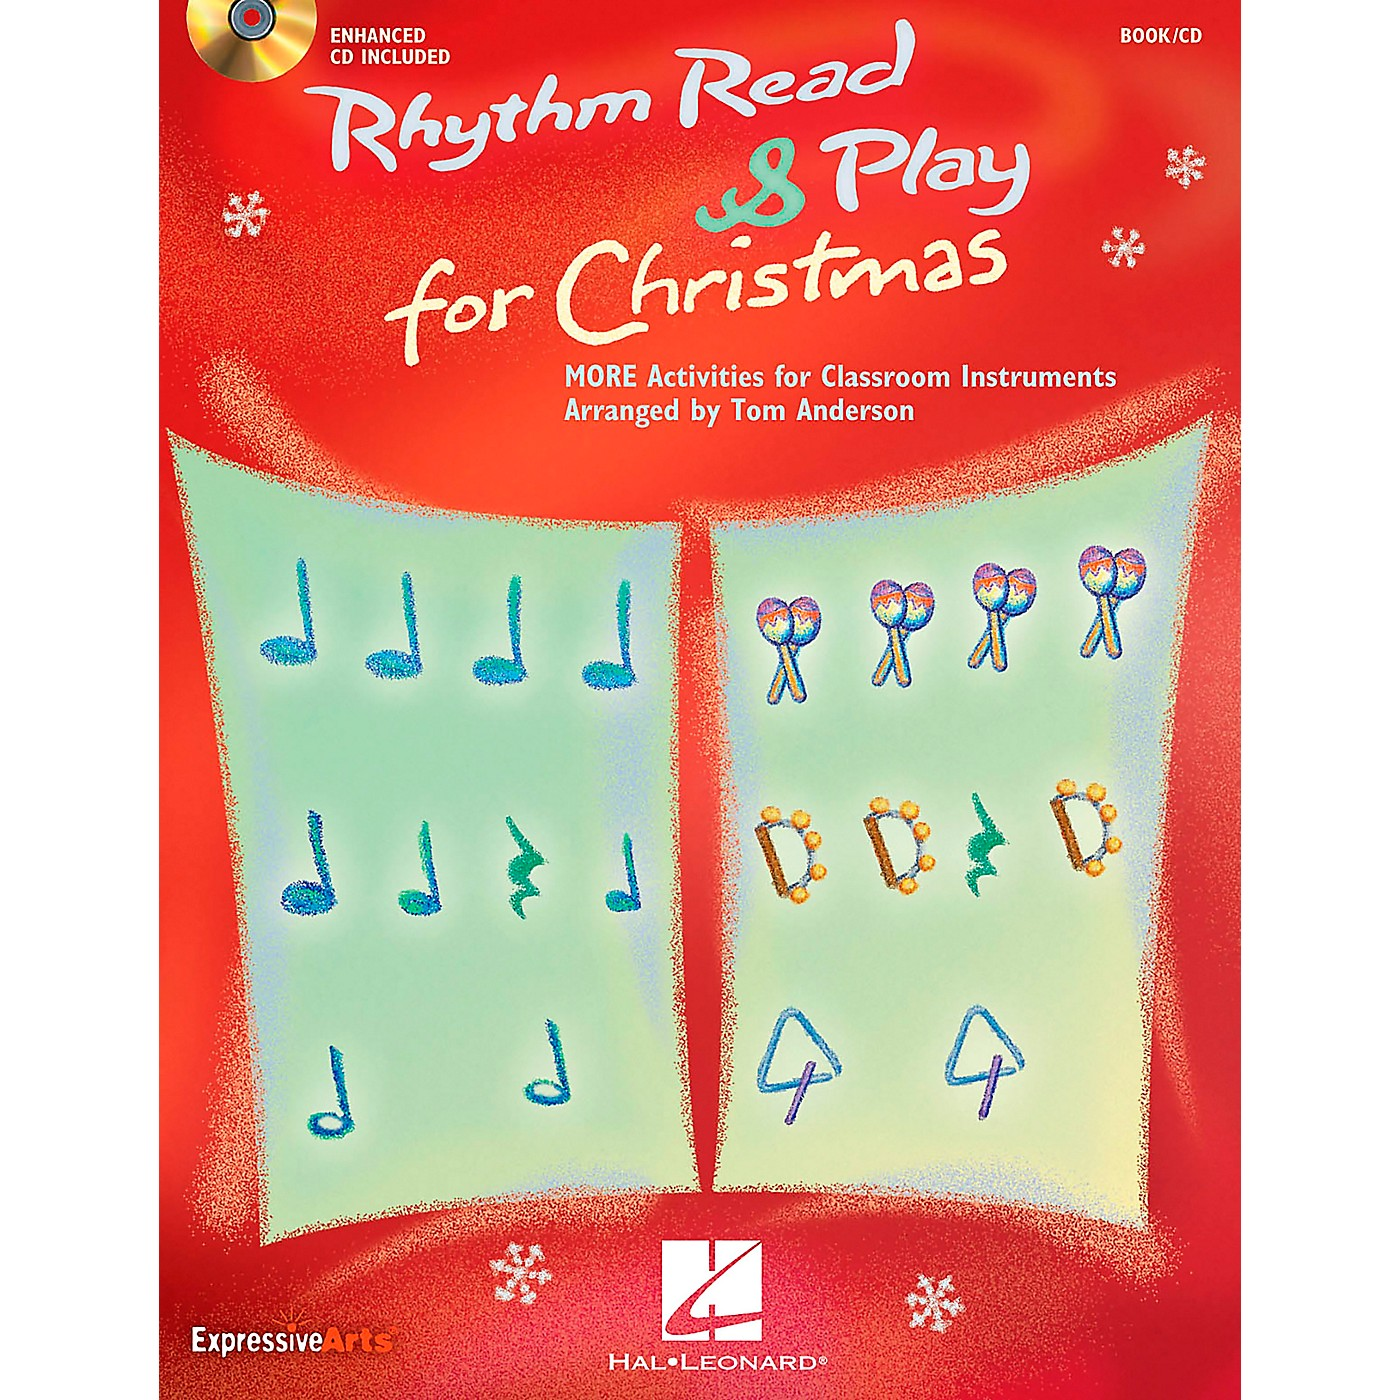 Hal Leonard Rhythm Read And Play For Christmas - MORE Activities for Classroom Instruments Book/CD thumbnail